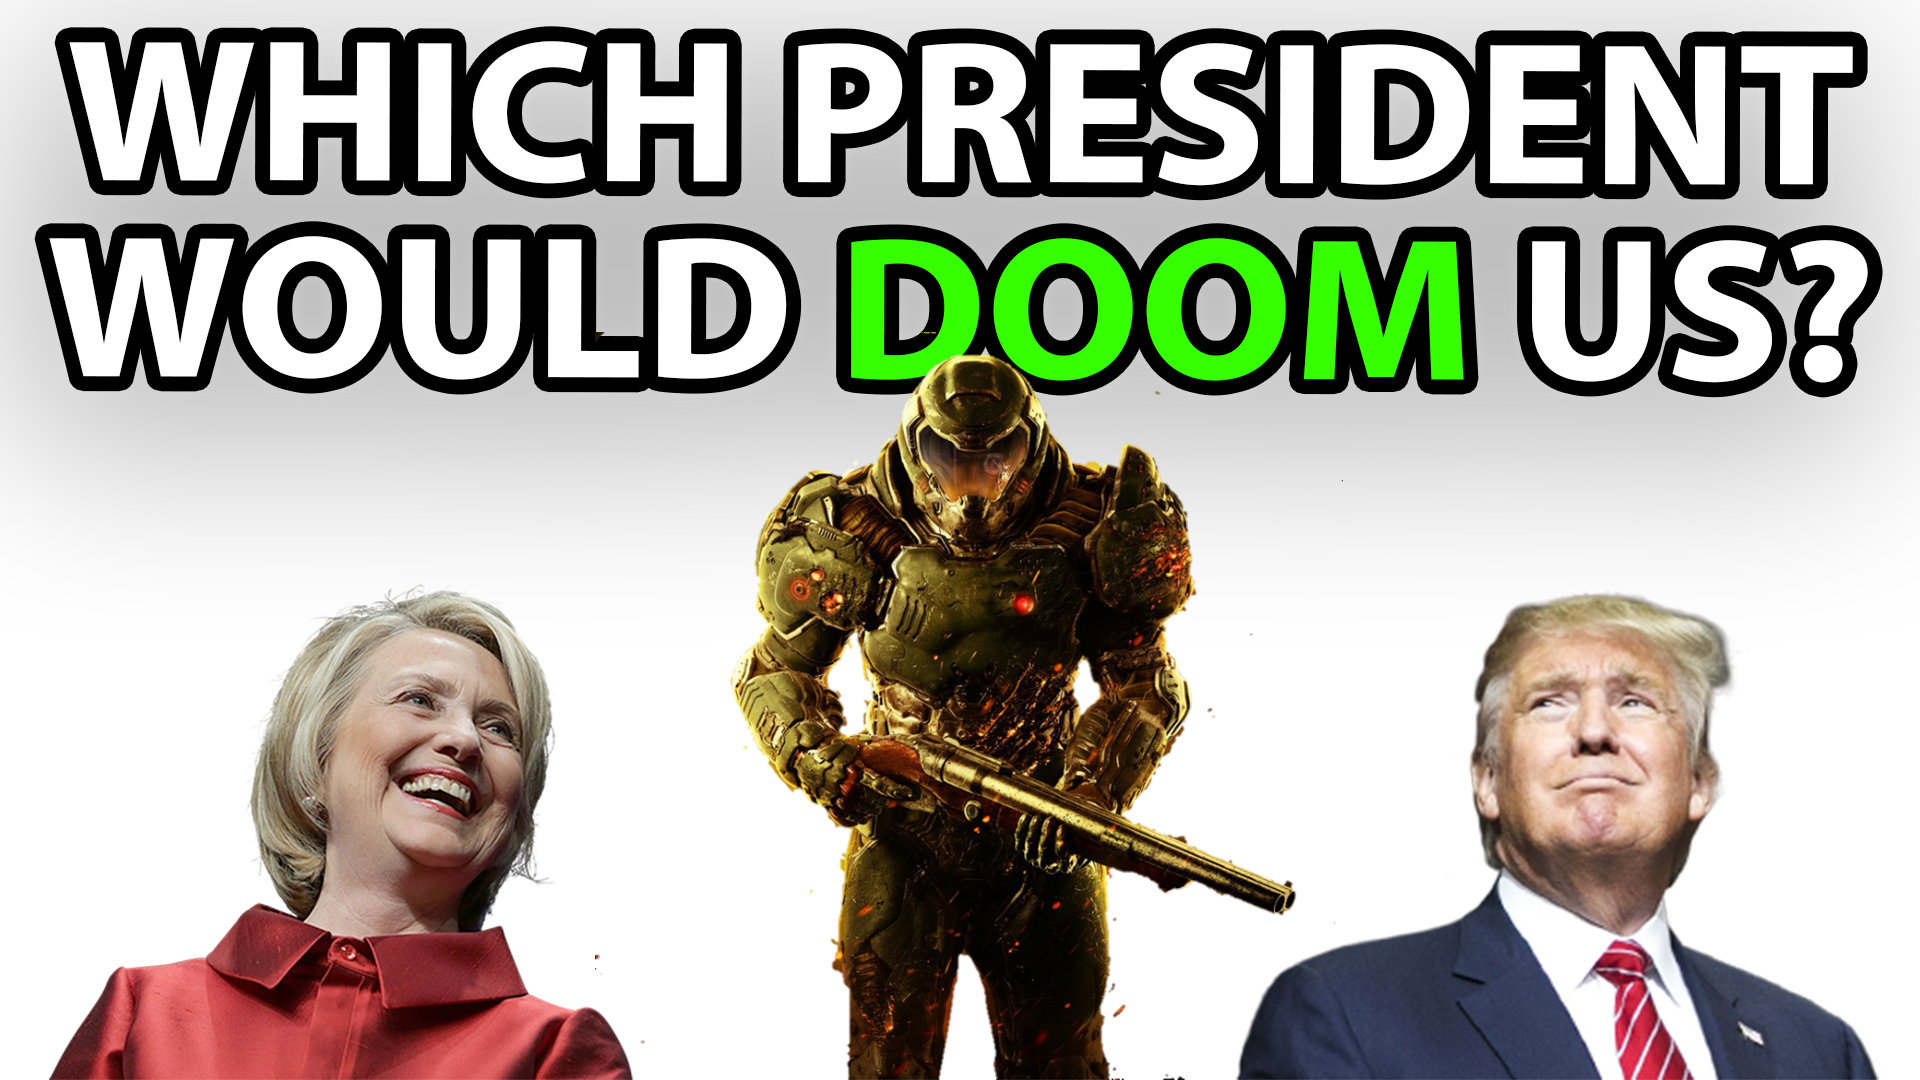 t time, election 2016, president, Hillary Clinton, Donald Trump, Newt Gingrich, Doom, video games